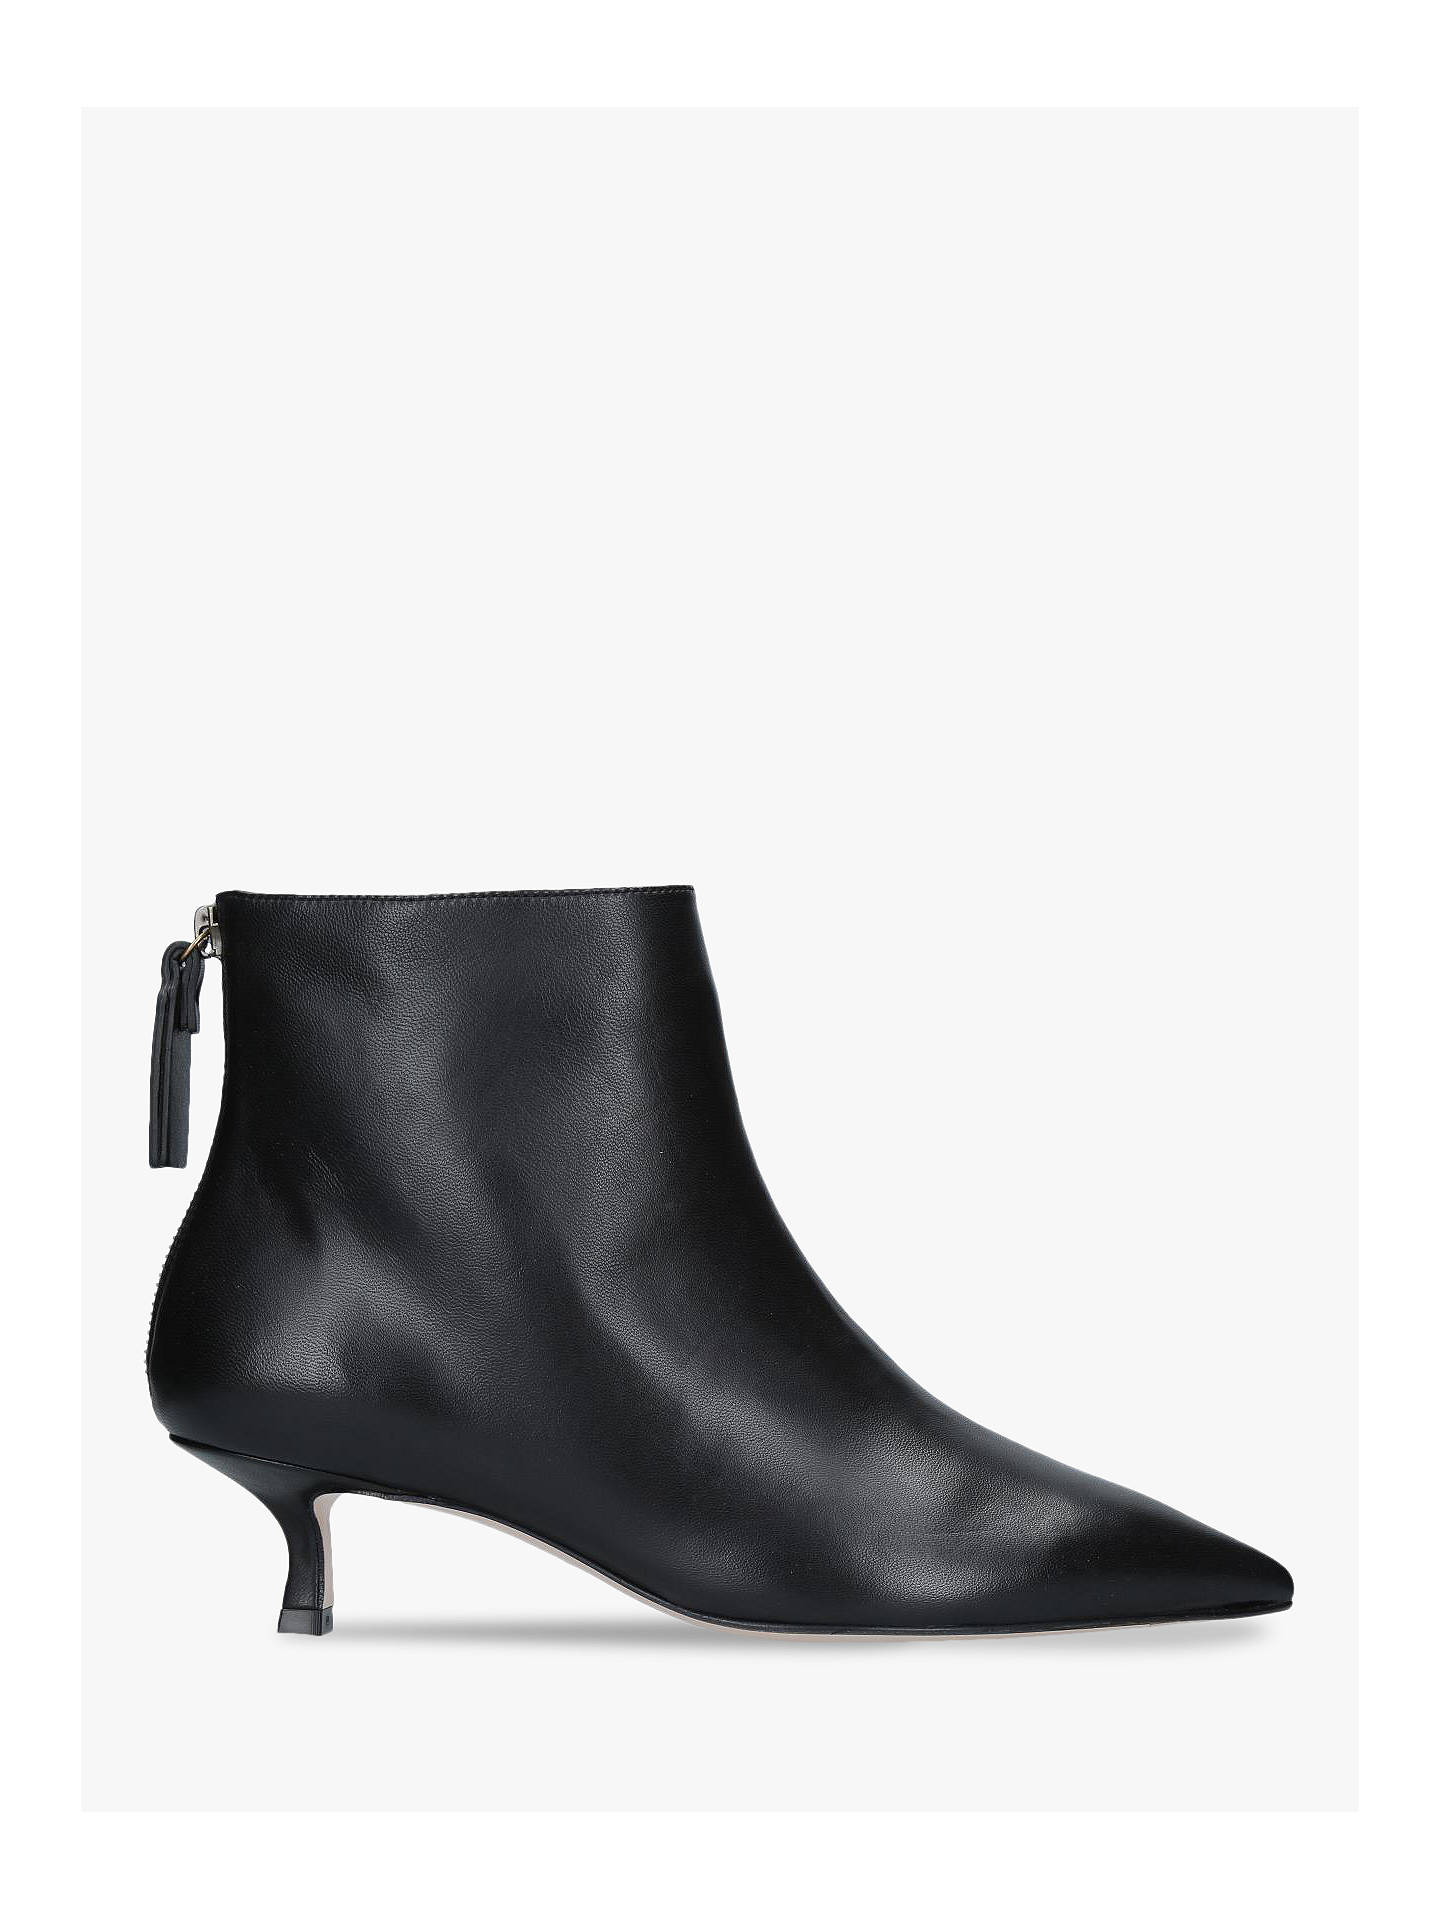 4b40e94e187 Stuart Weitzman Juniper Kitten Heel Ankle Boots, Black Leather at ...